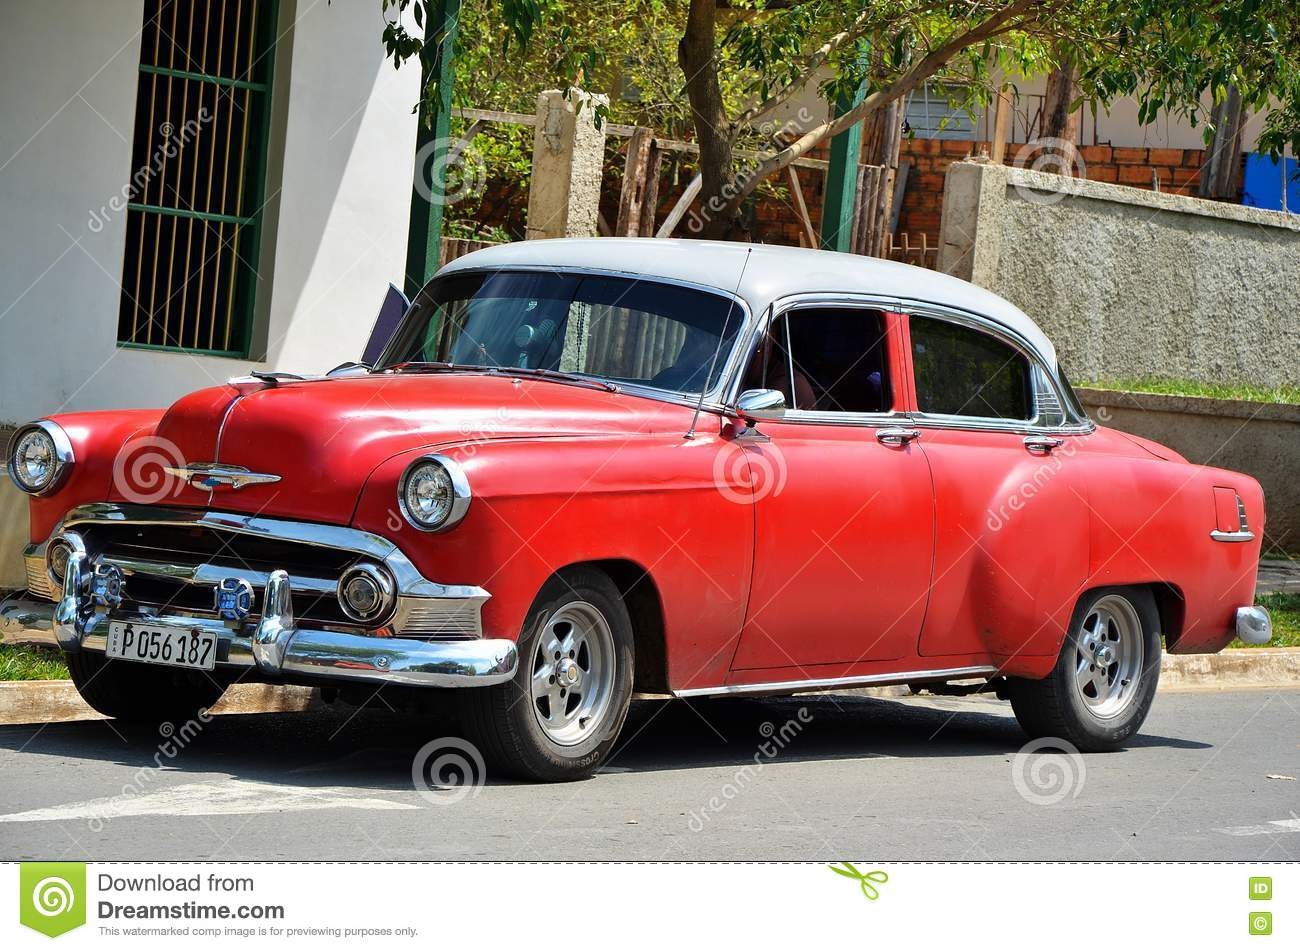 vieille voiture am ricaine dans vinales cuba photo ditorial image du couleur rouge 74903091. Black Bedroom Furniture Sets. Home Design Ideas